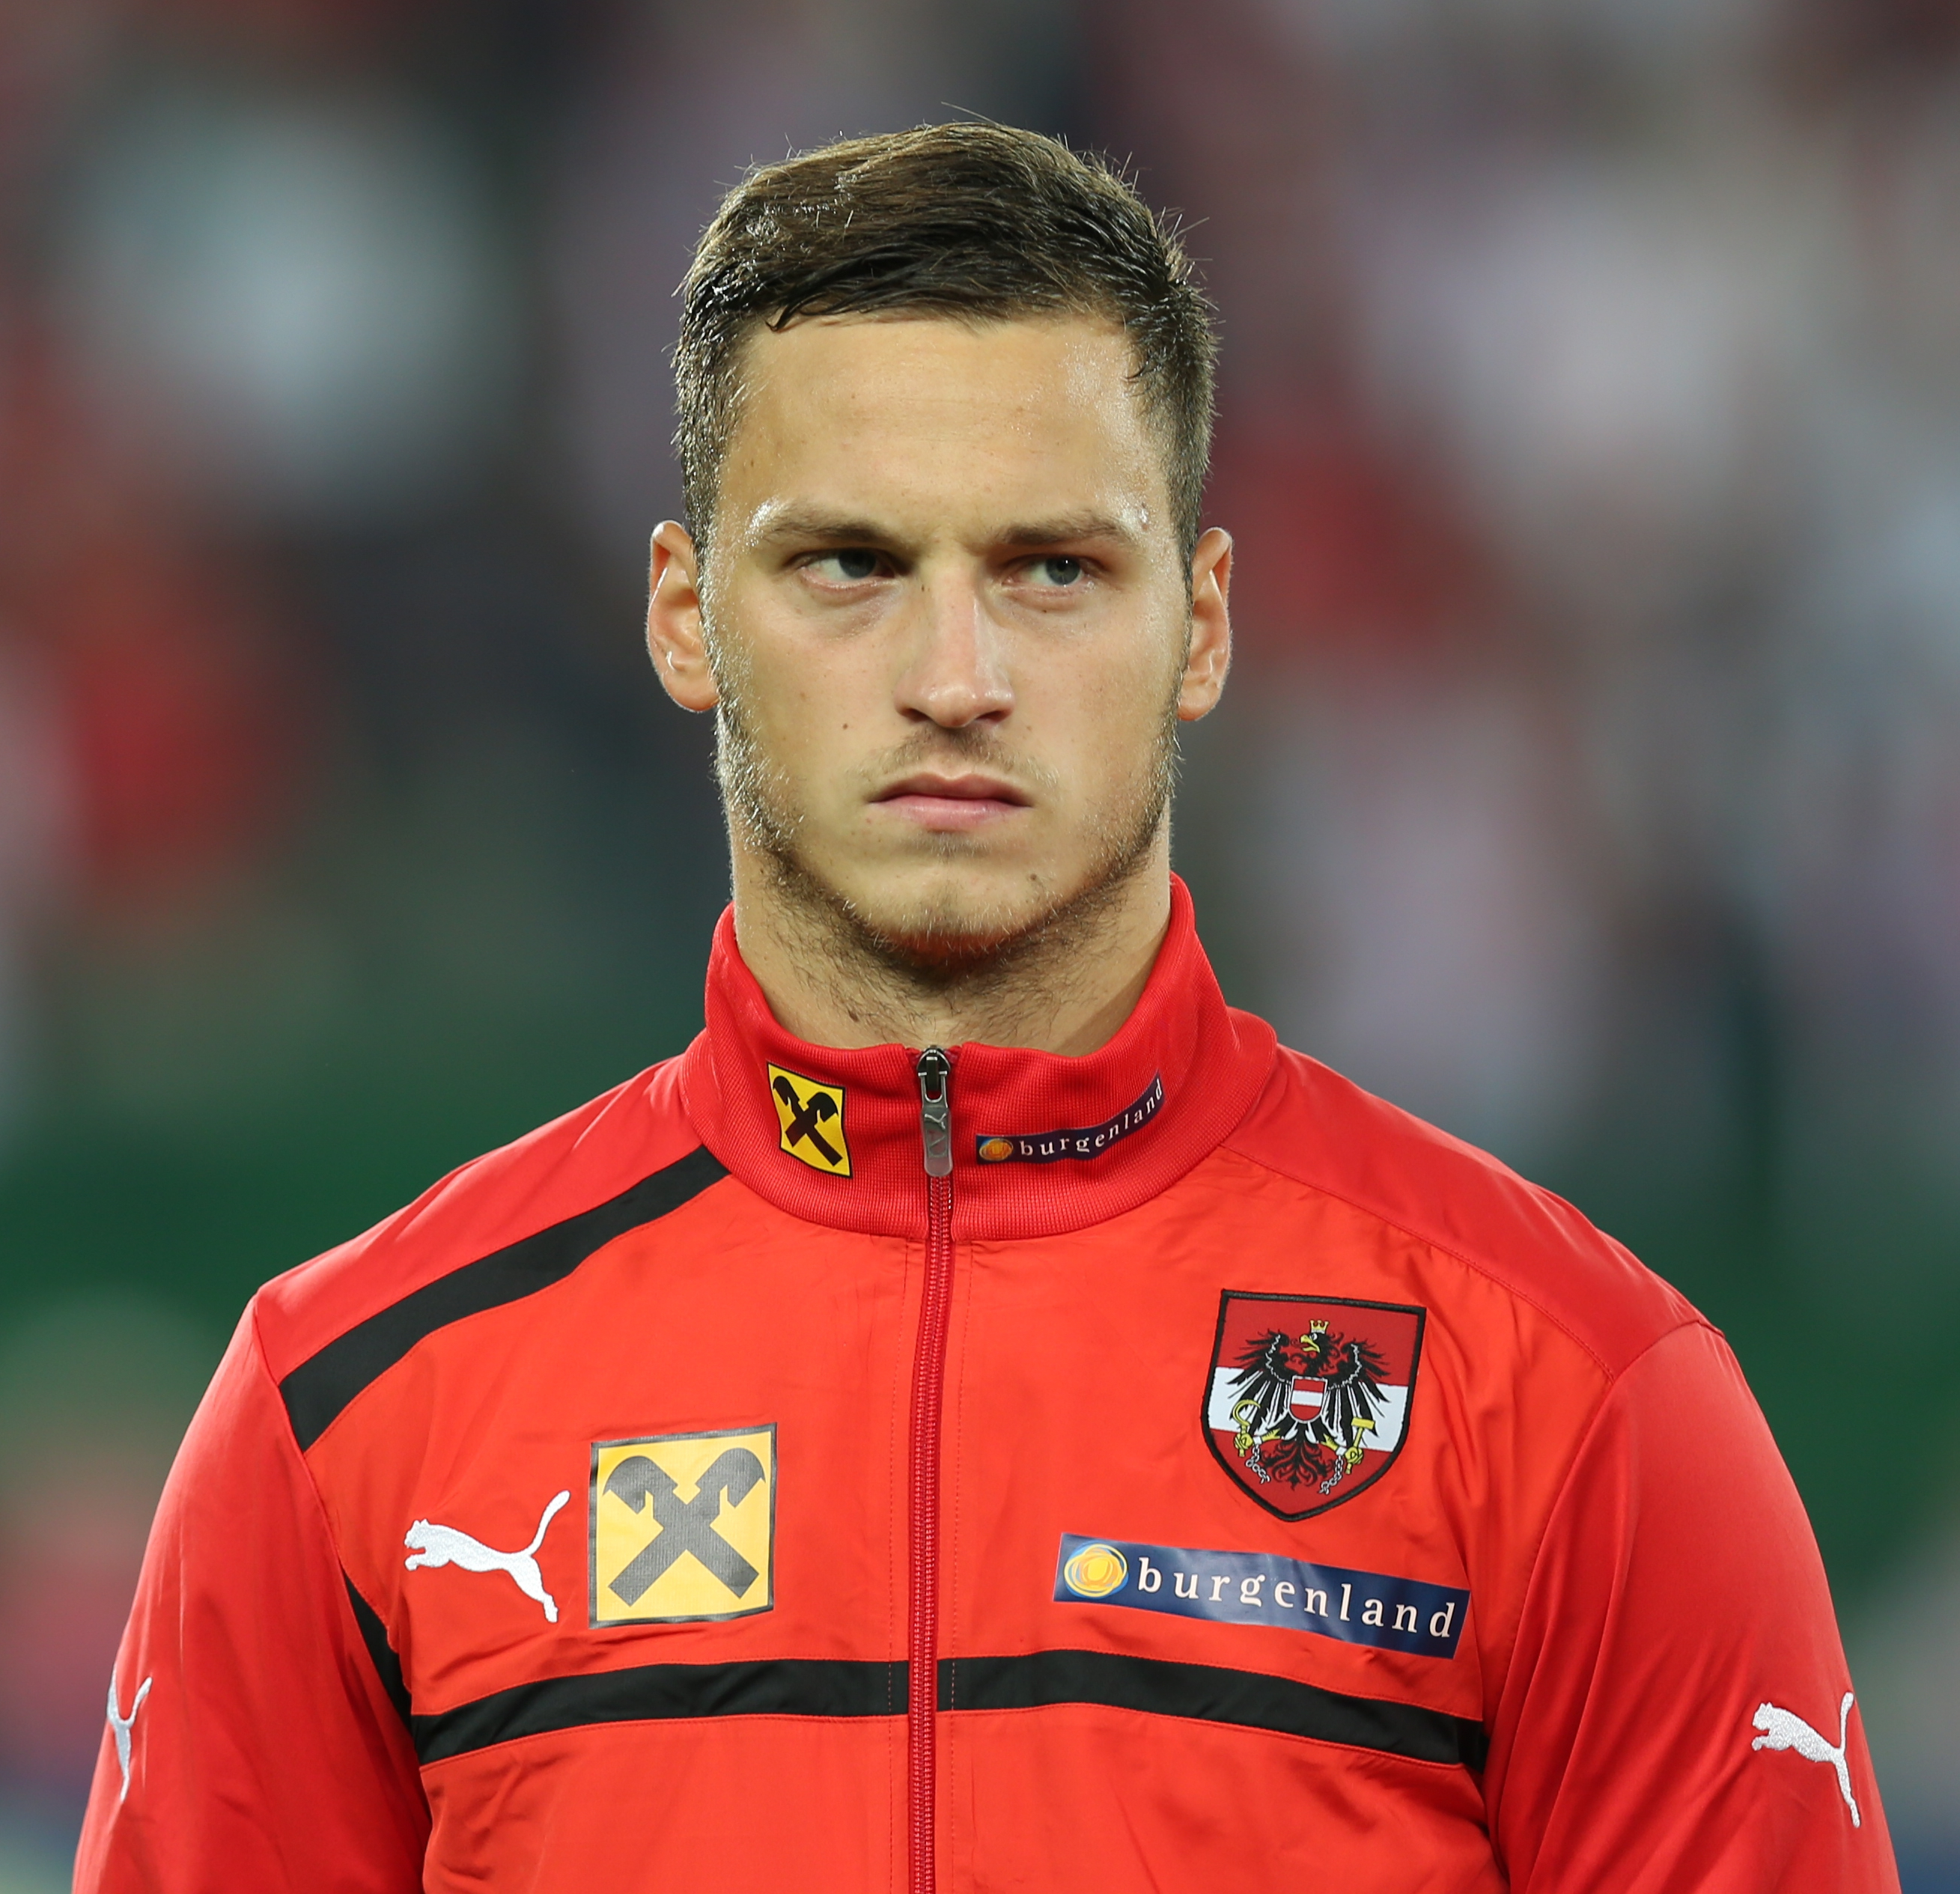 FIFA_WC-qualification_2014_-_Austria_vs._Germany_2012-09-11_-Marko_Arnautovic_01